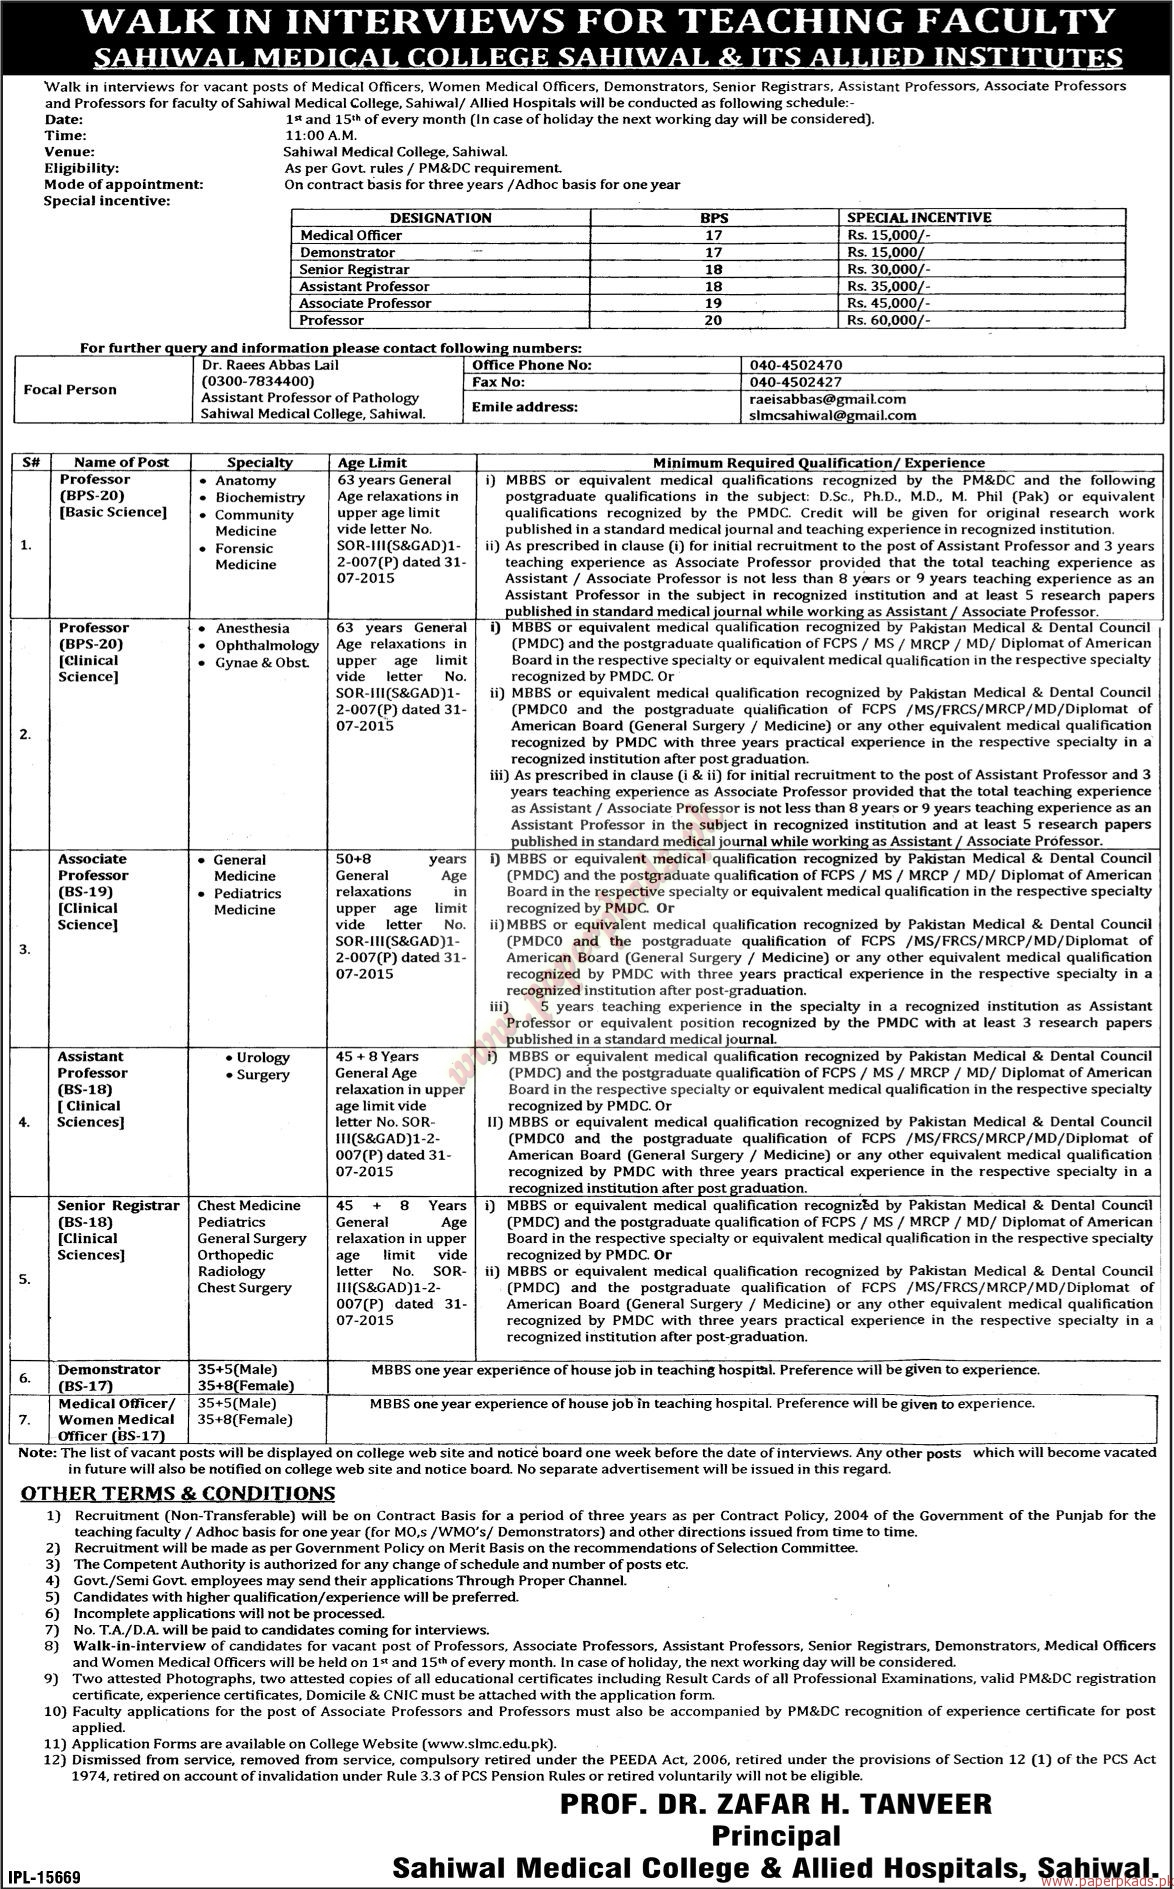 Sahiwal Medical College Jobs - The News Jobs ads 01 January 2017